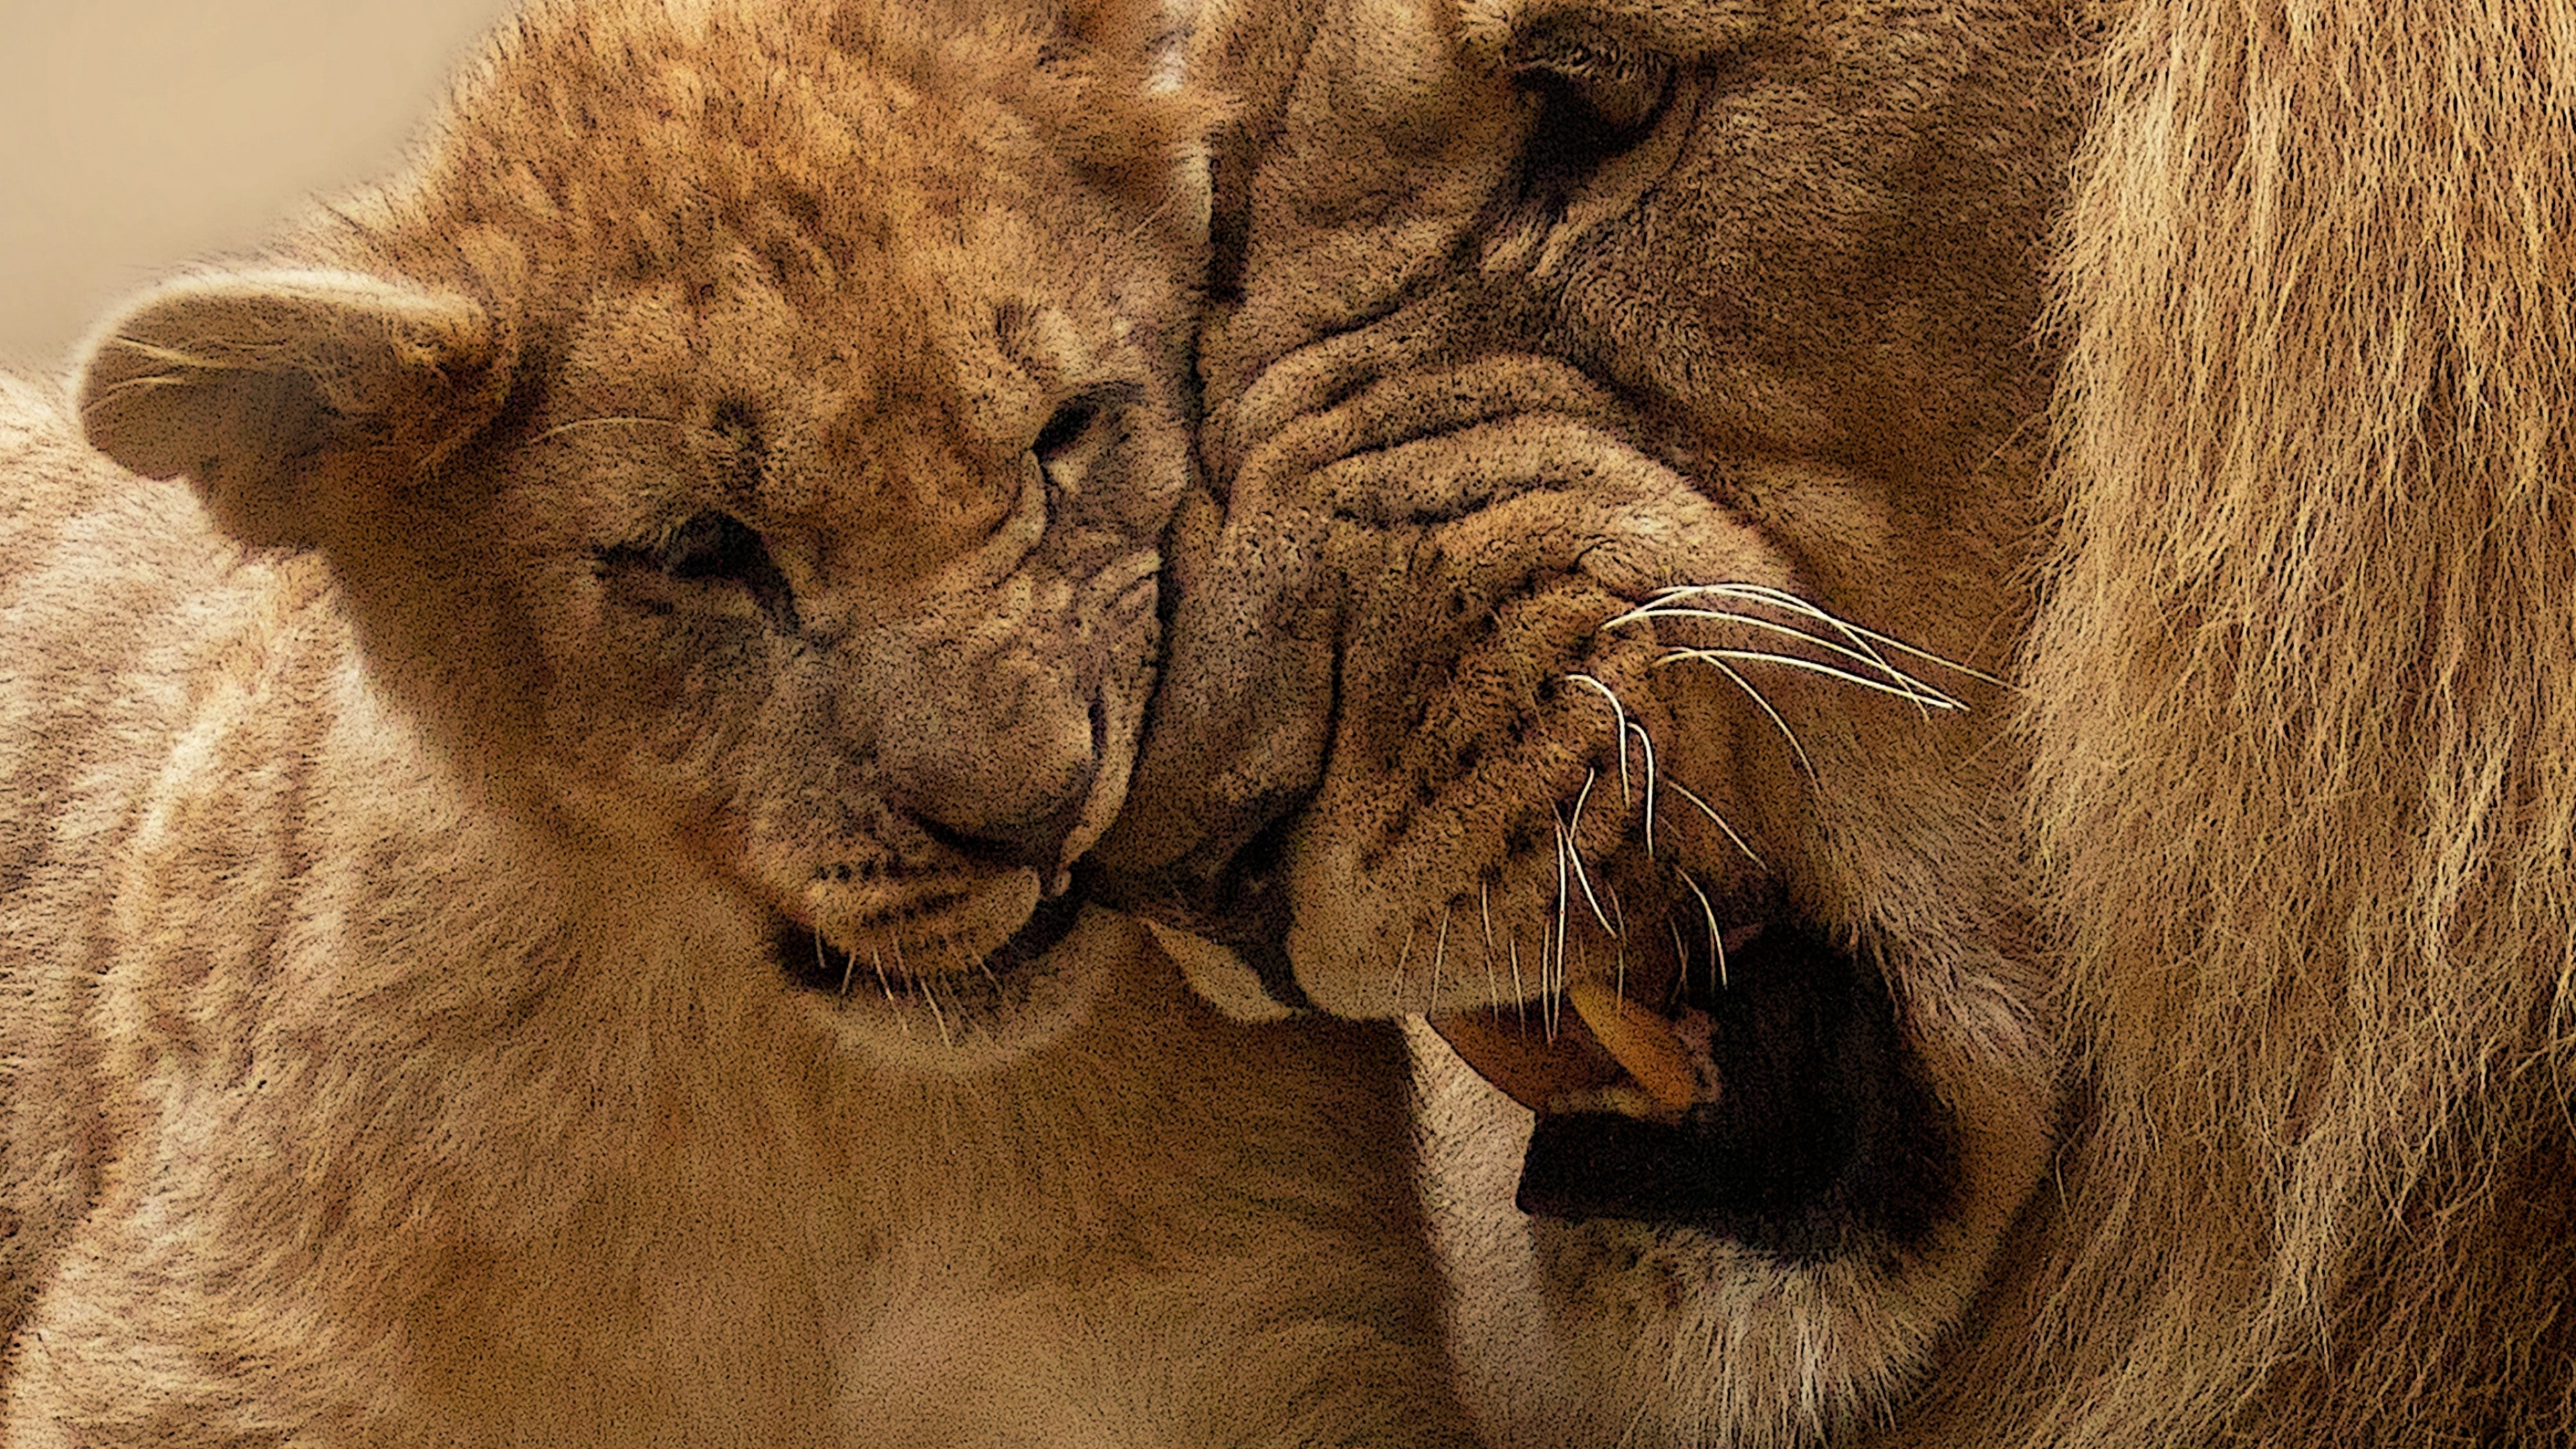 African Lion and Lion Cub HD Wallpaper 4K